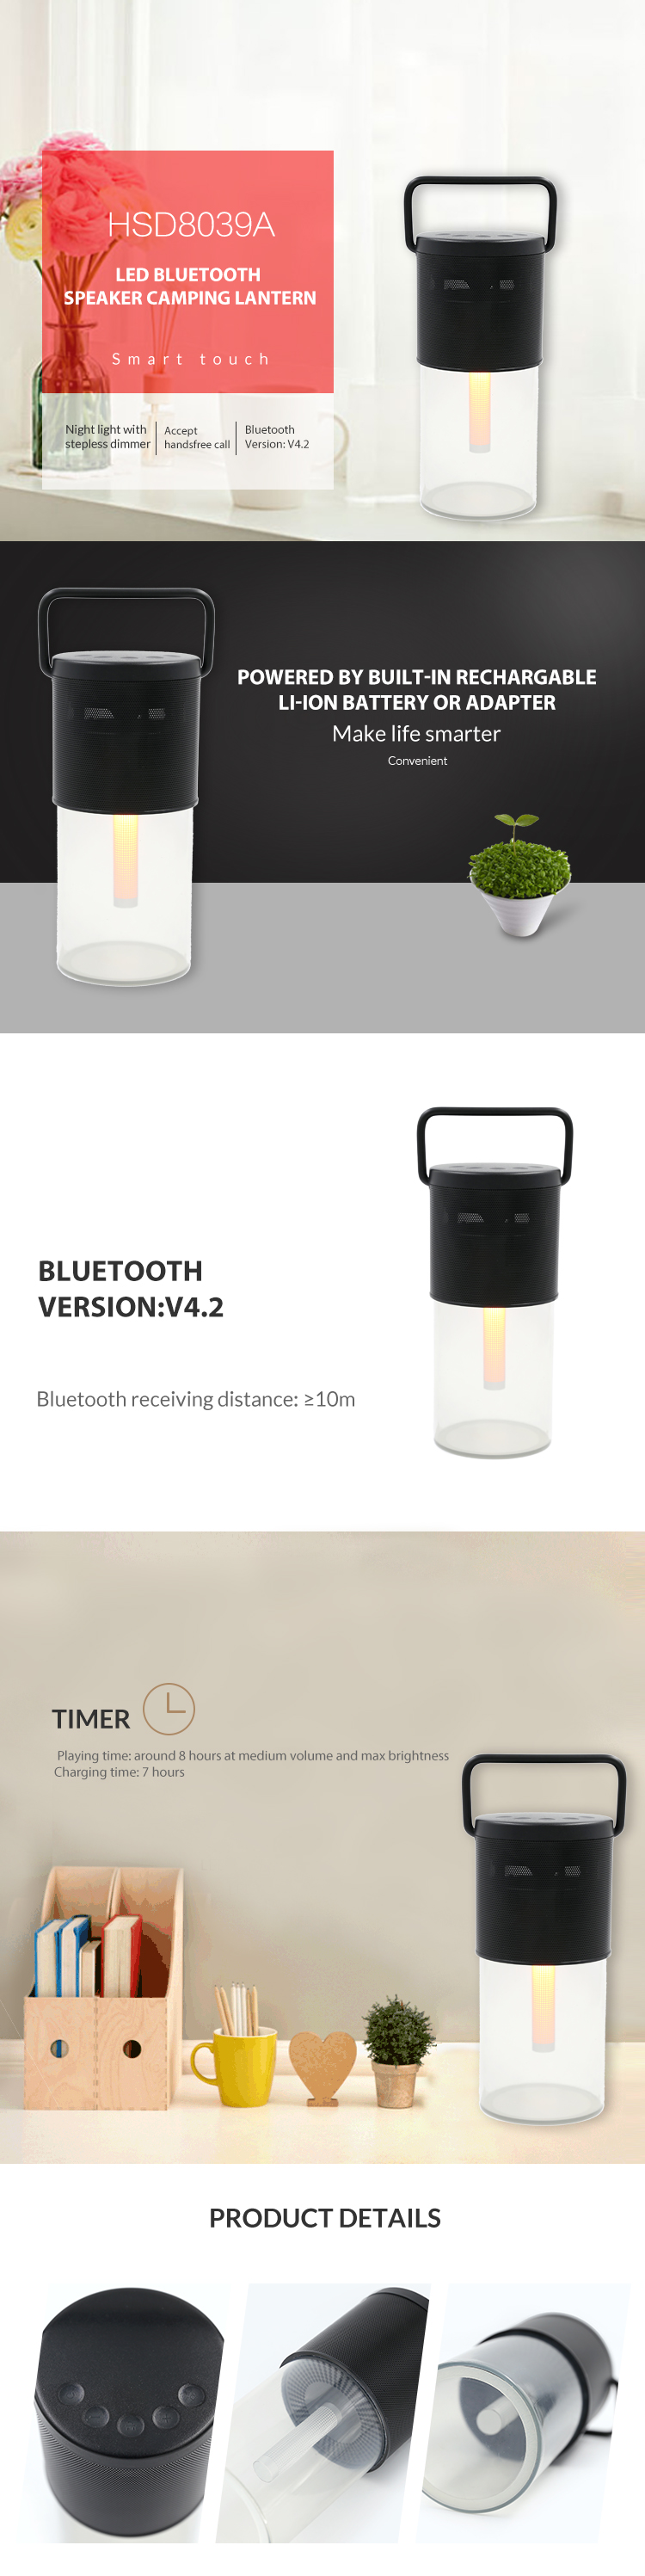 Best sellers in europe 2019 retro portable wireless waterproof outdoor bluetooth speaker led lantern with USB output for phone